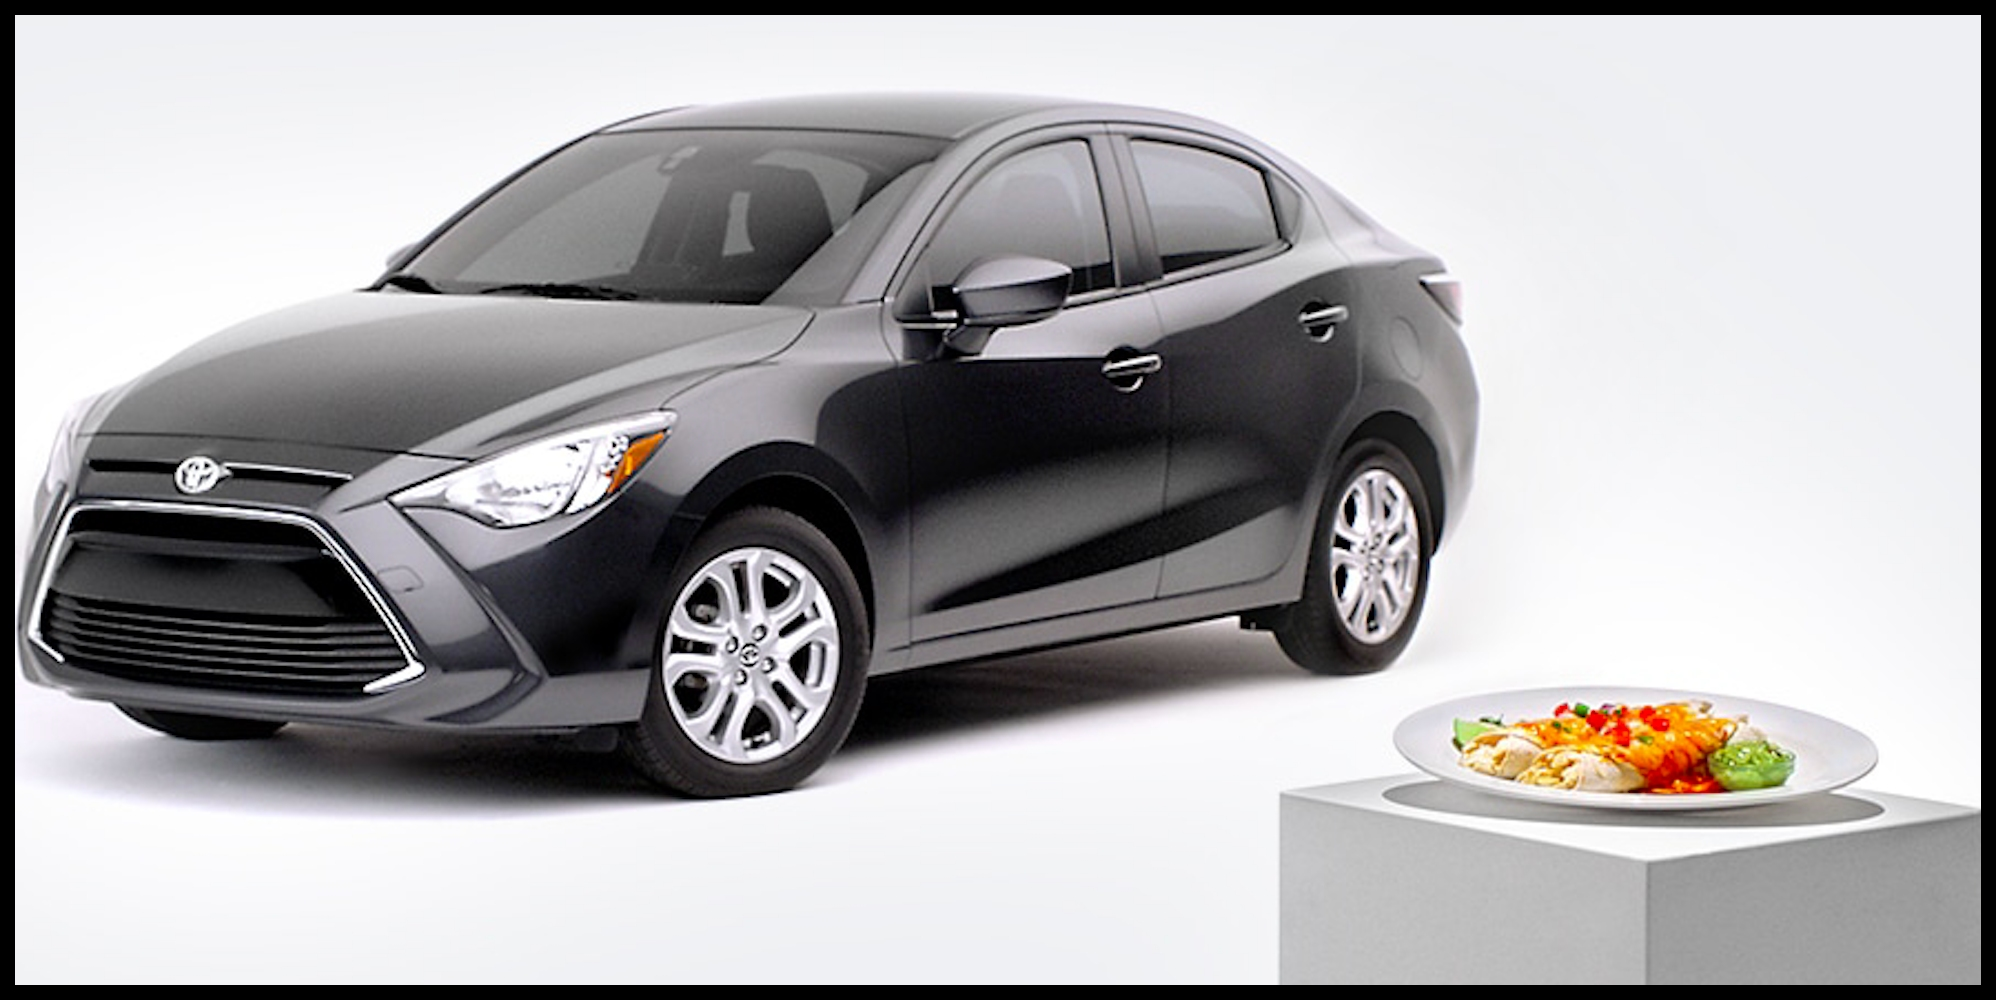 From leather upholstery to premium sound packages and features are generally mon place across most models Not so for the 2017 Toyota Yaris